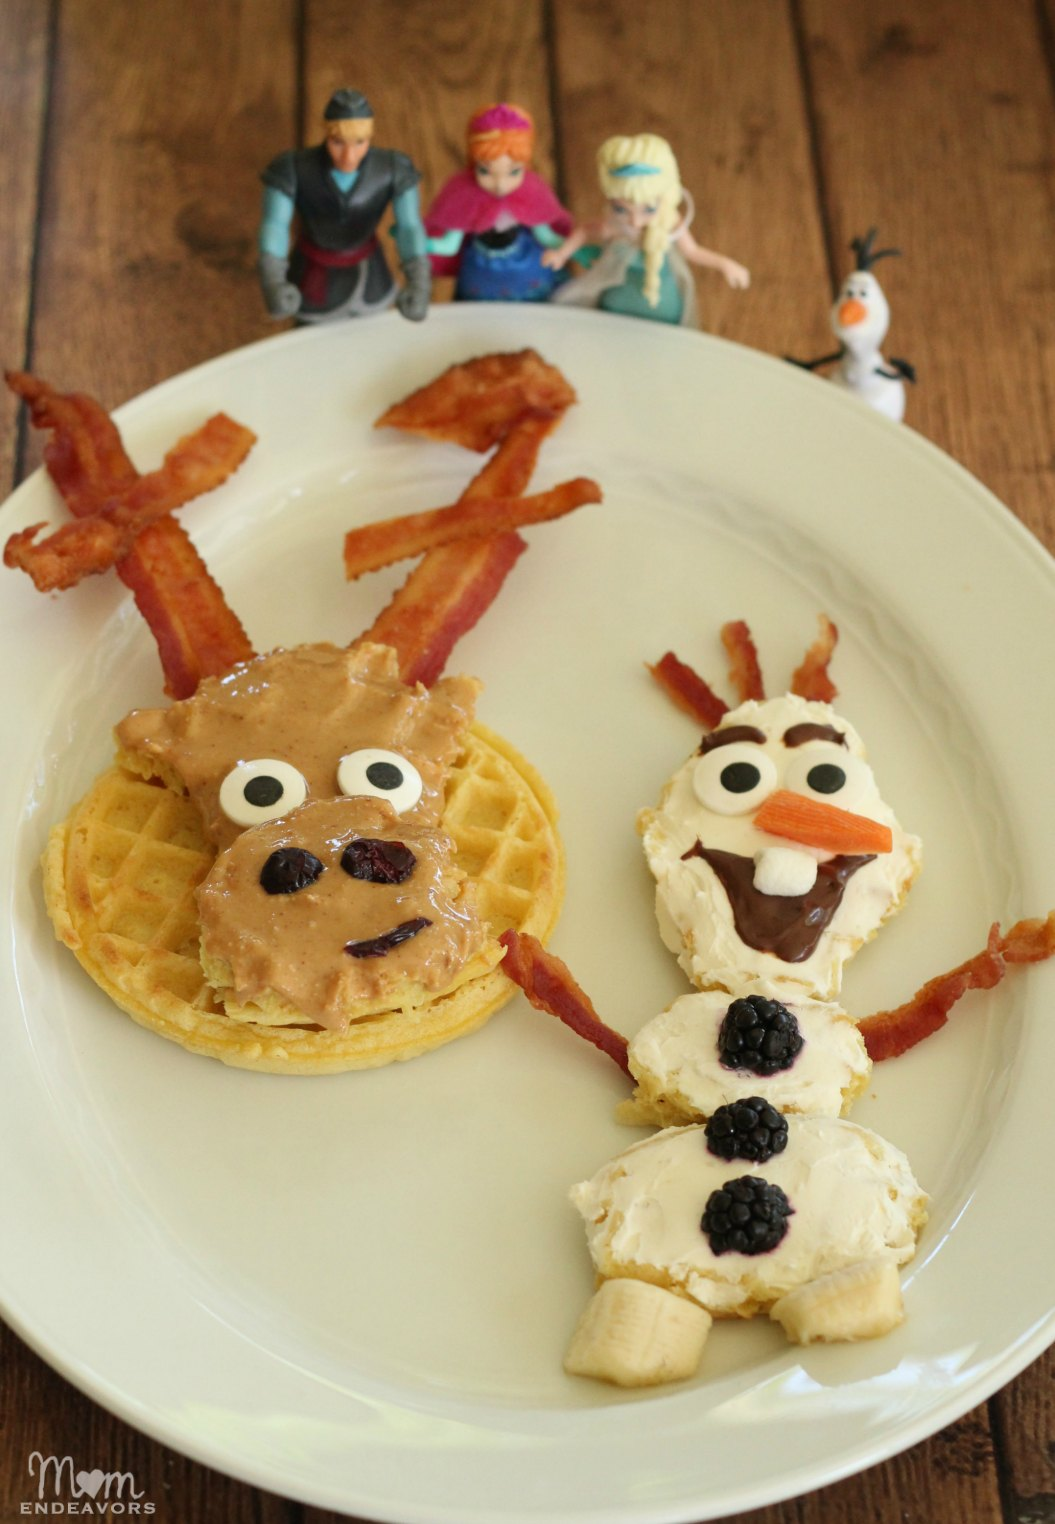 Disney Frozen Sven & Olaf Fun Food